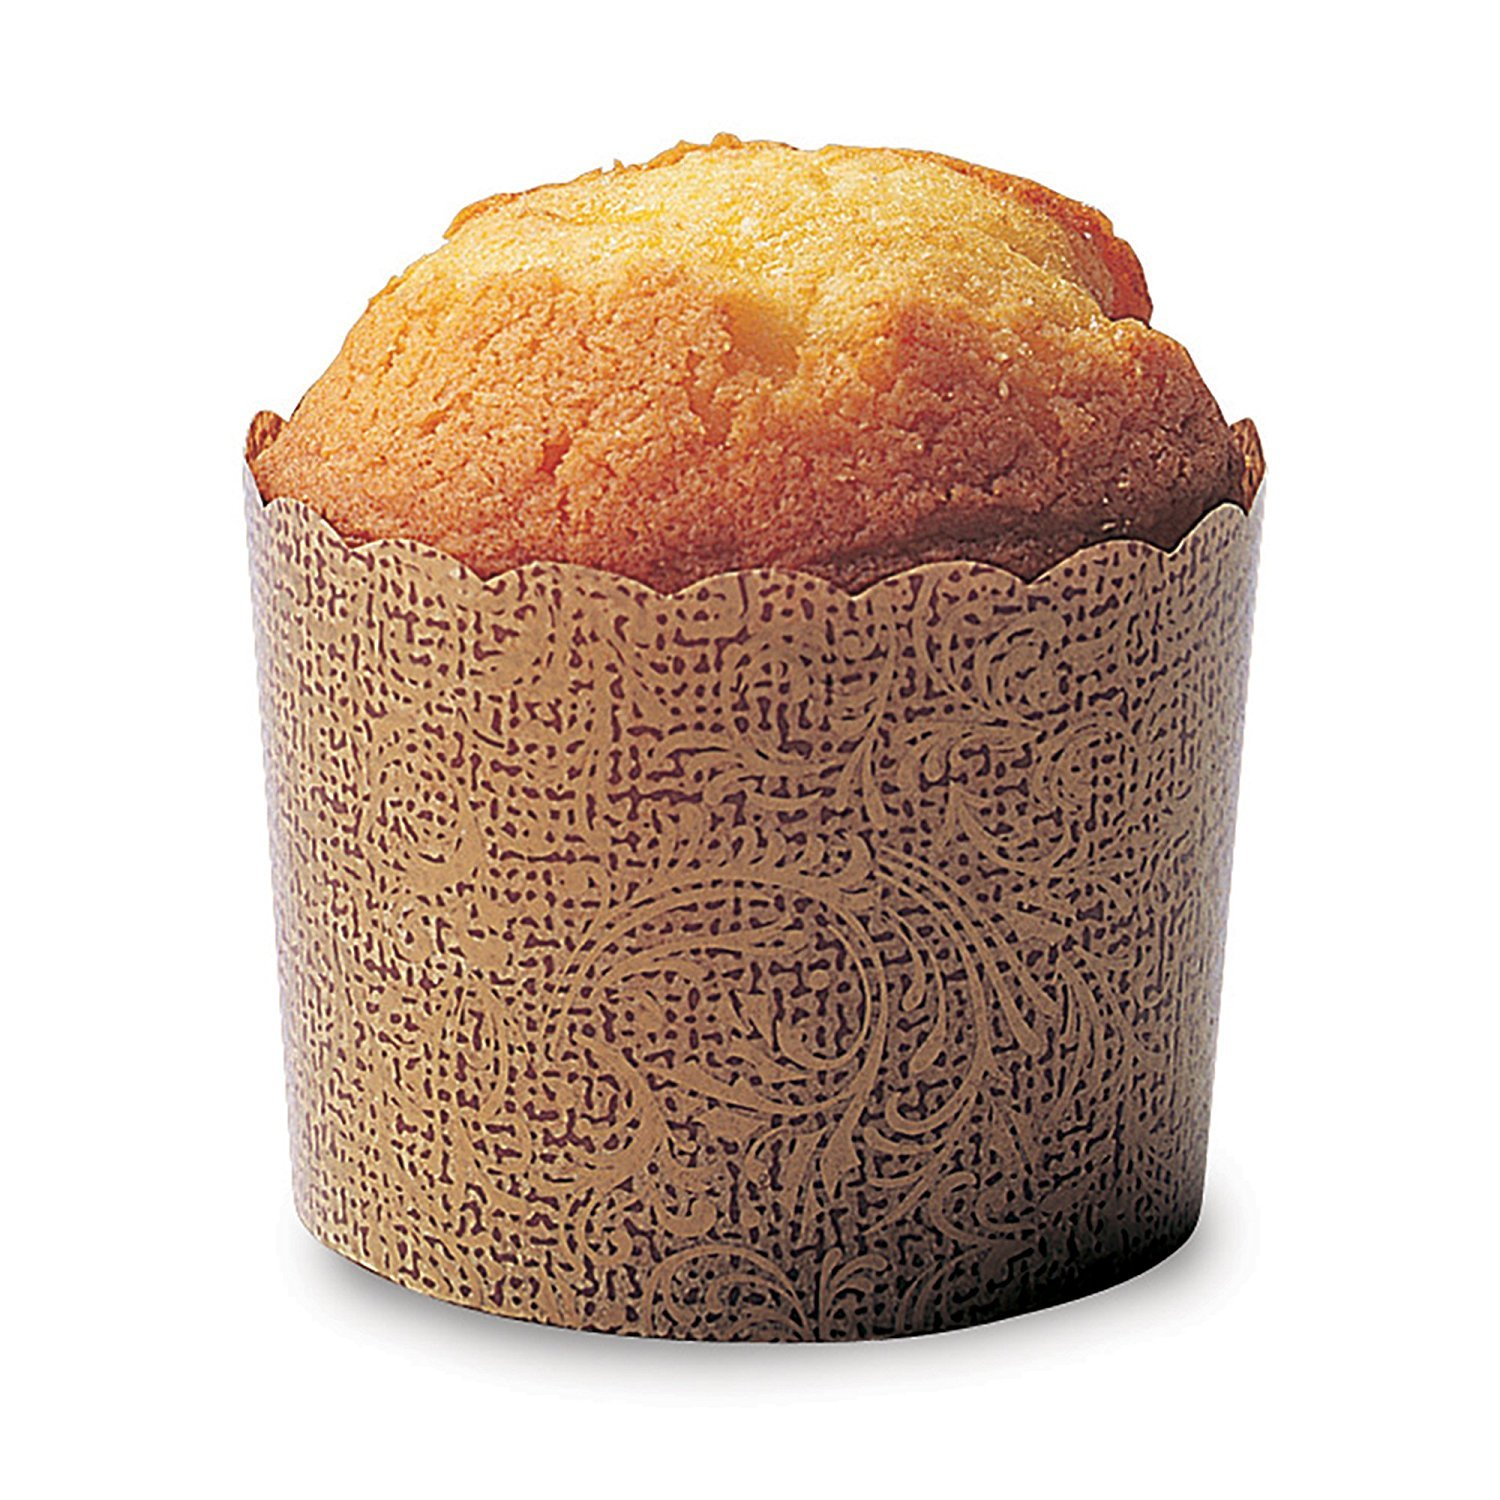 Welcome Home Brands PM303 Antique Paper Baking Cup 5.1-Ounce Volume, 2.3 Inch Diameter x 2 Inch High - Pack of 100